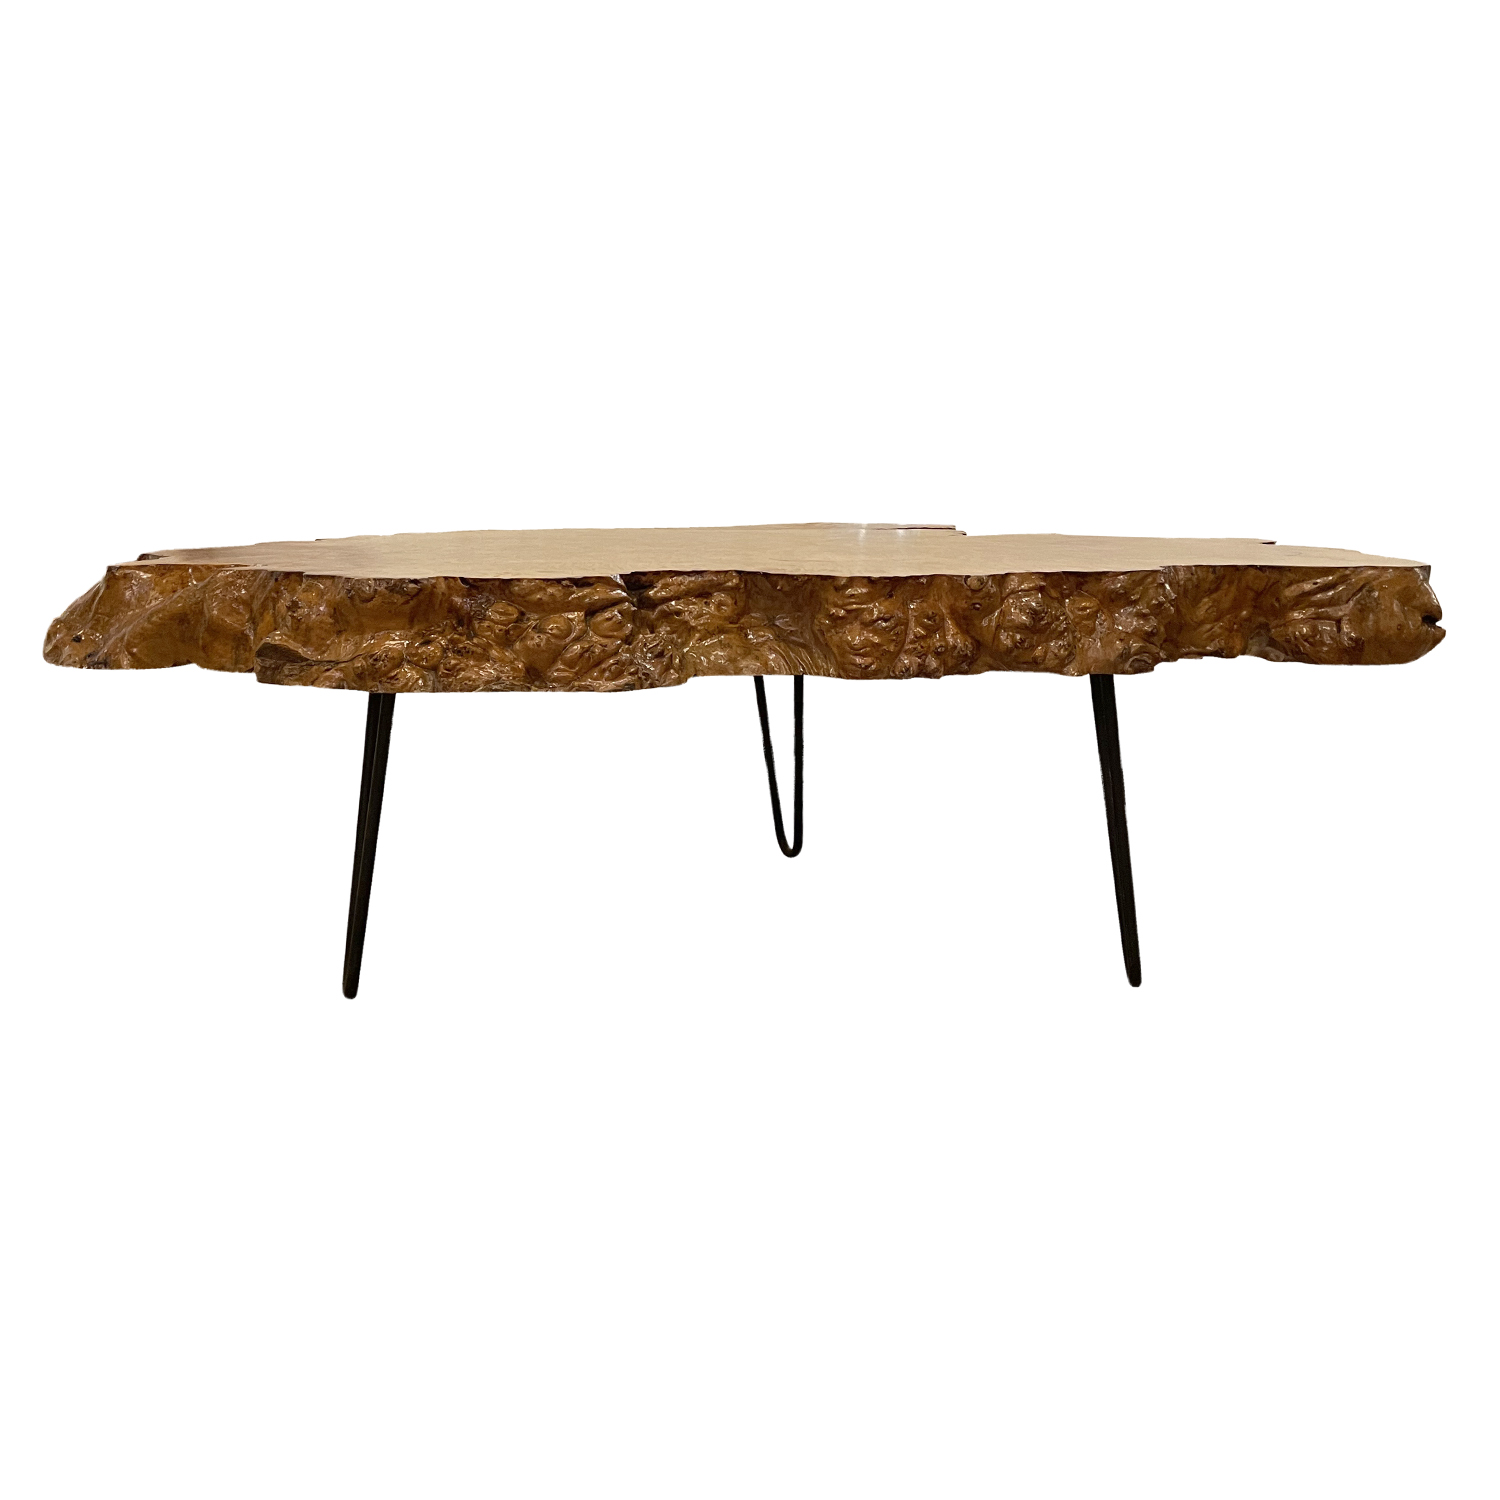 20th Century American Burlwood Coffee Table